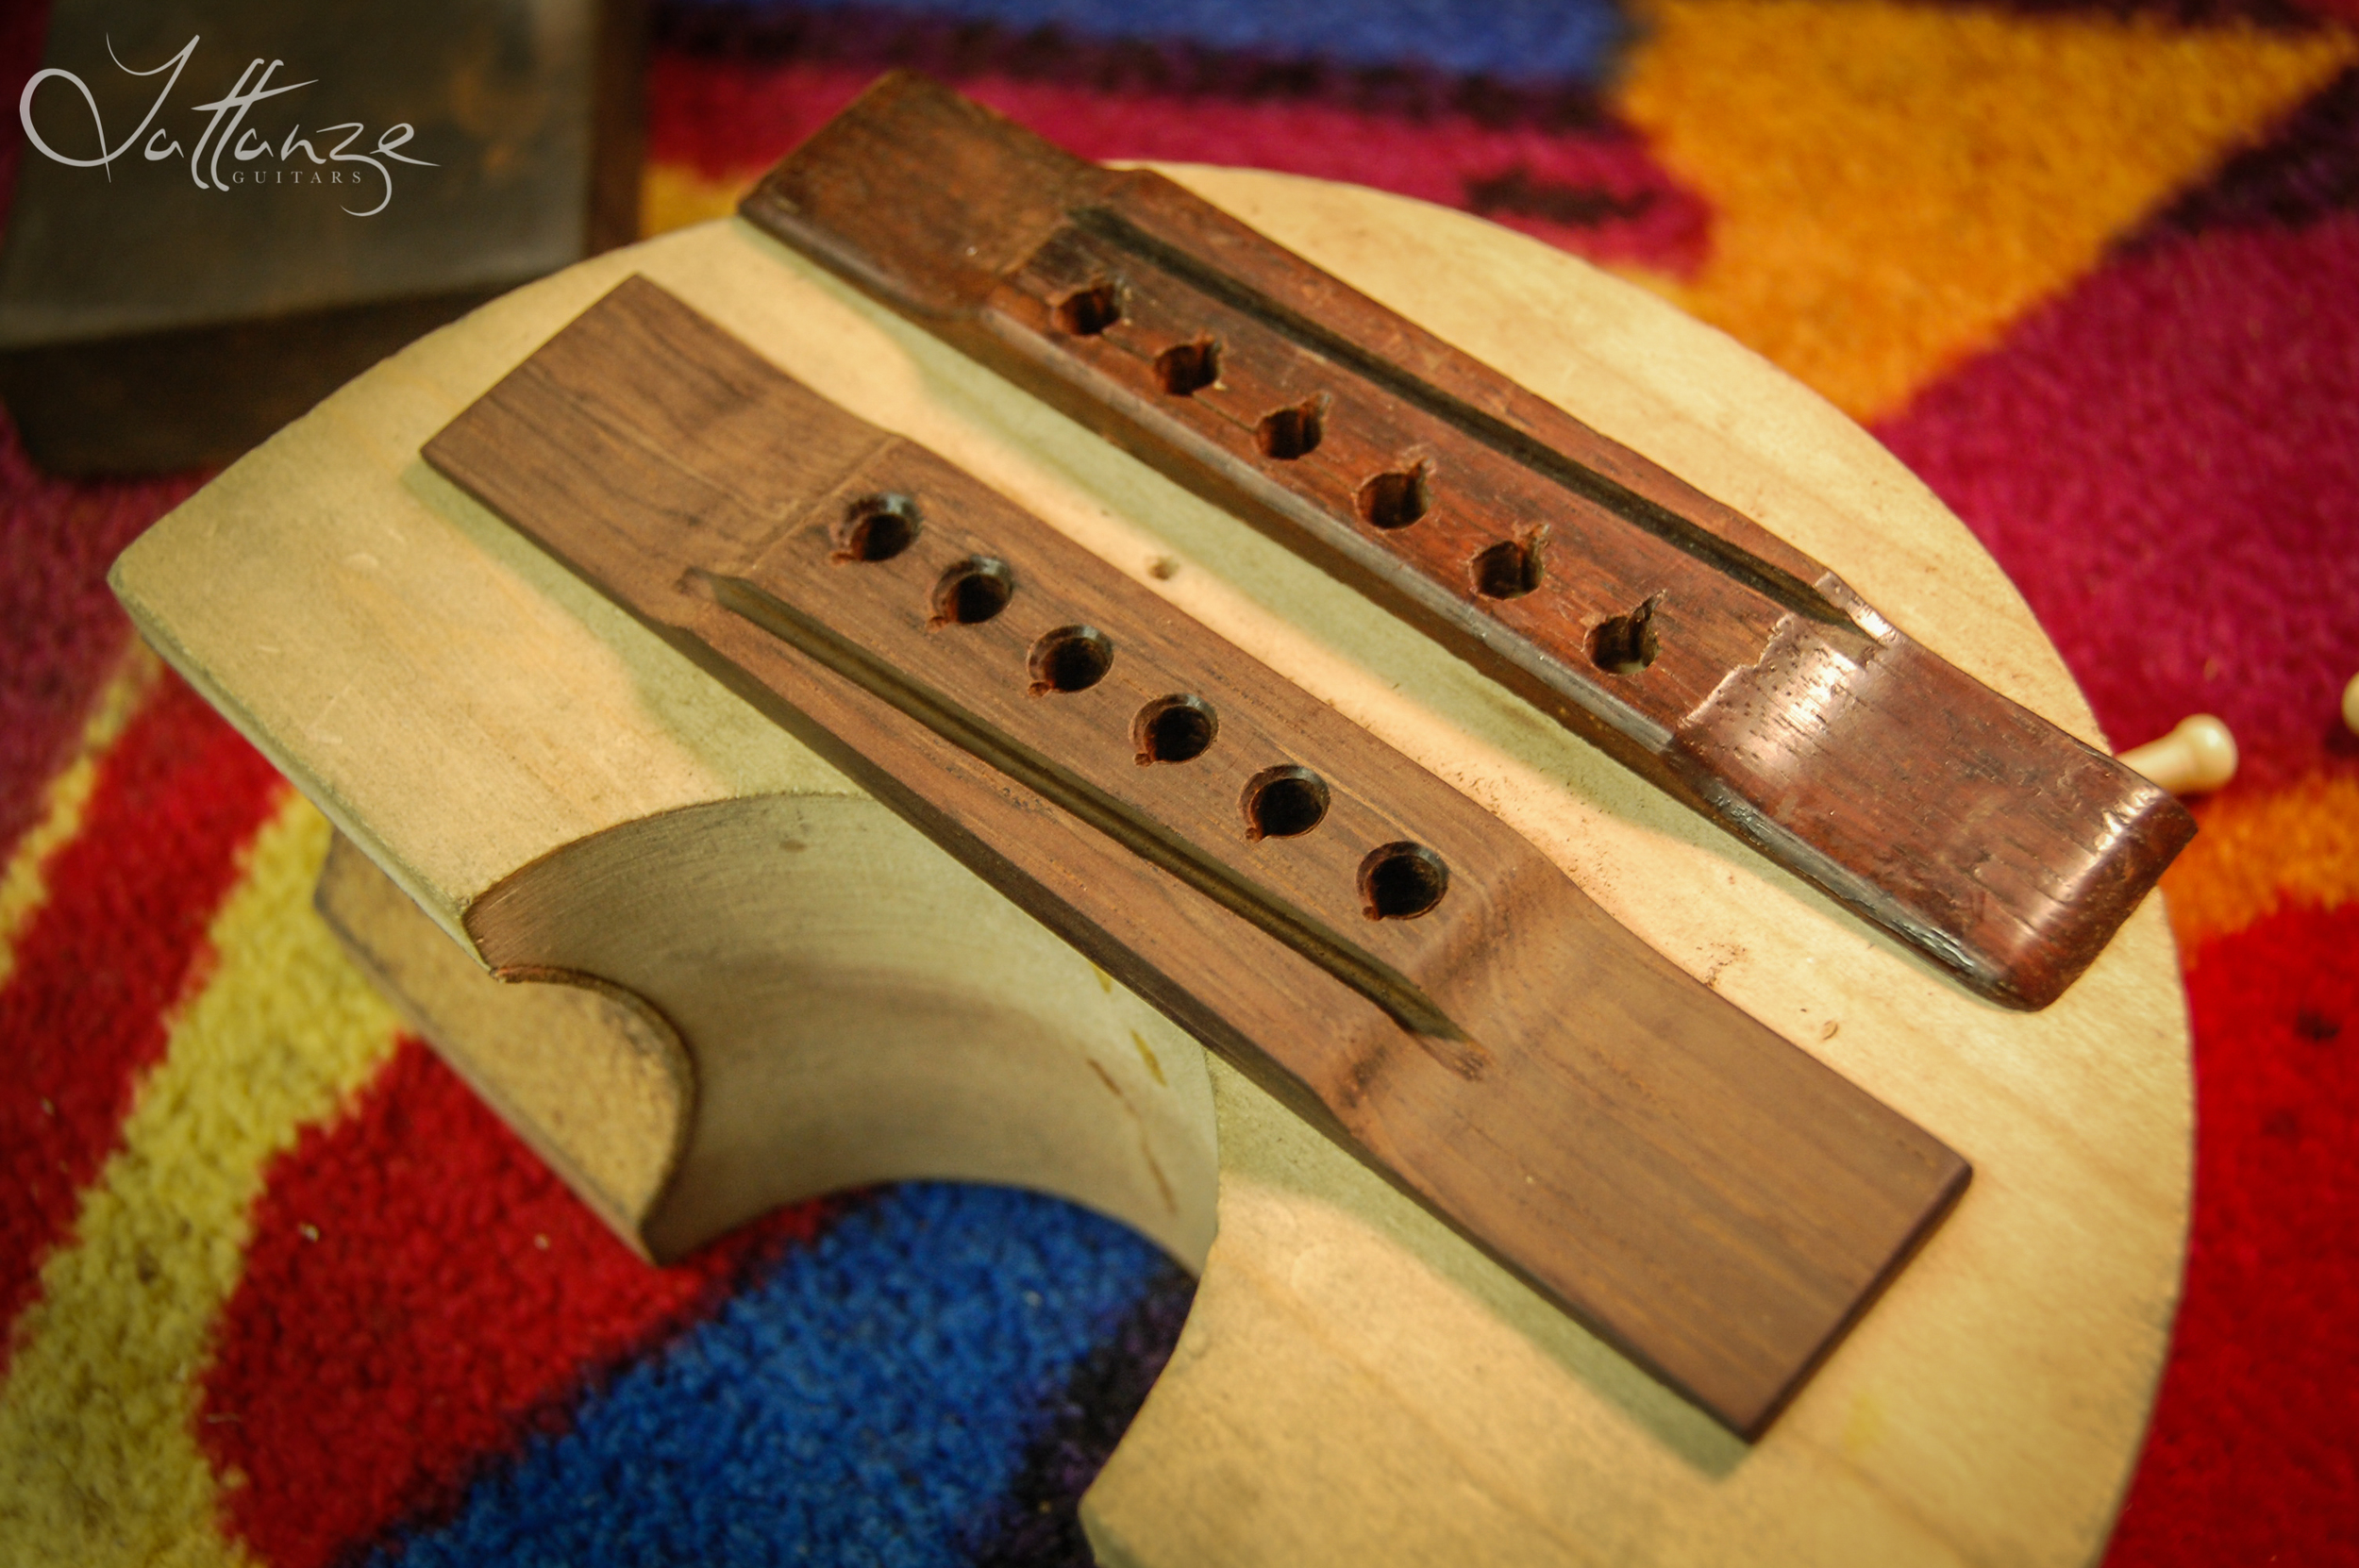 Sandeing the new bridge made from Brazilian Rosewood